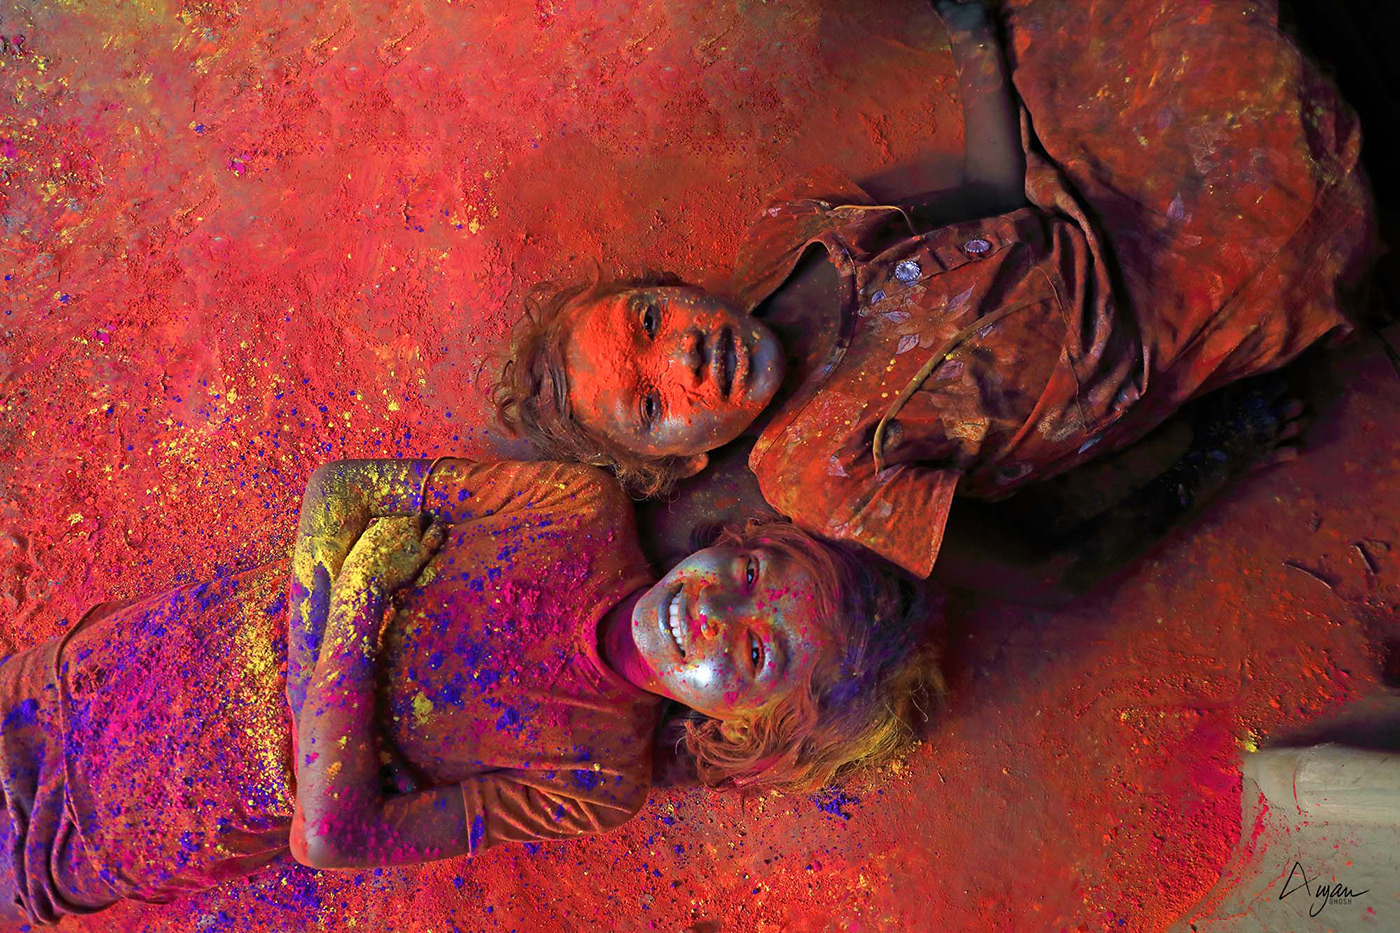 colour,Holi Festivity,India,kids,march,Outdoor,people,red,travelphotography